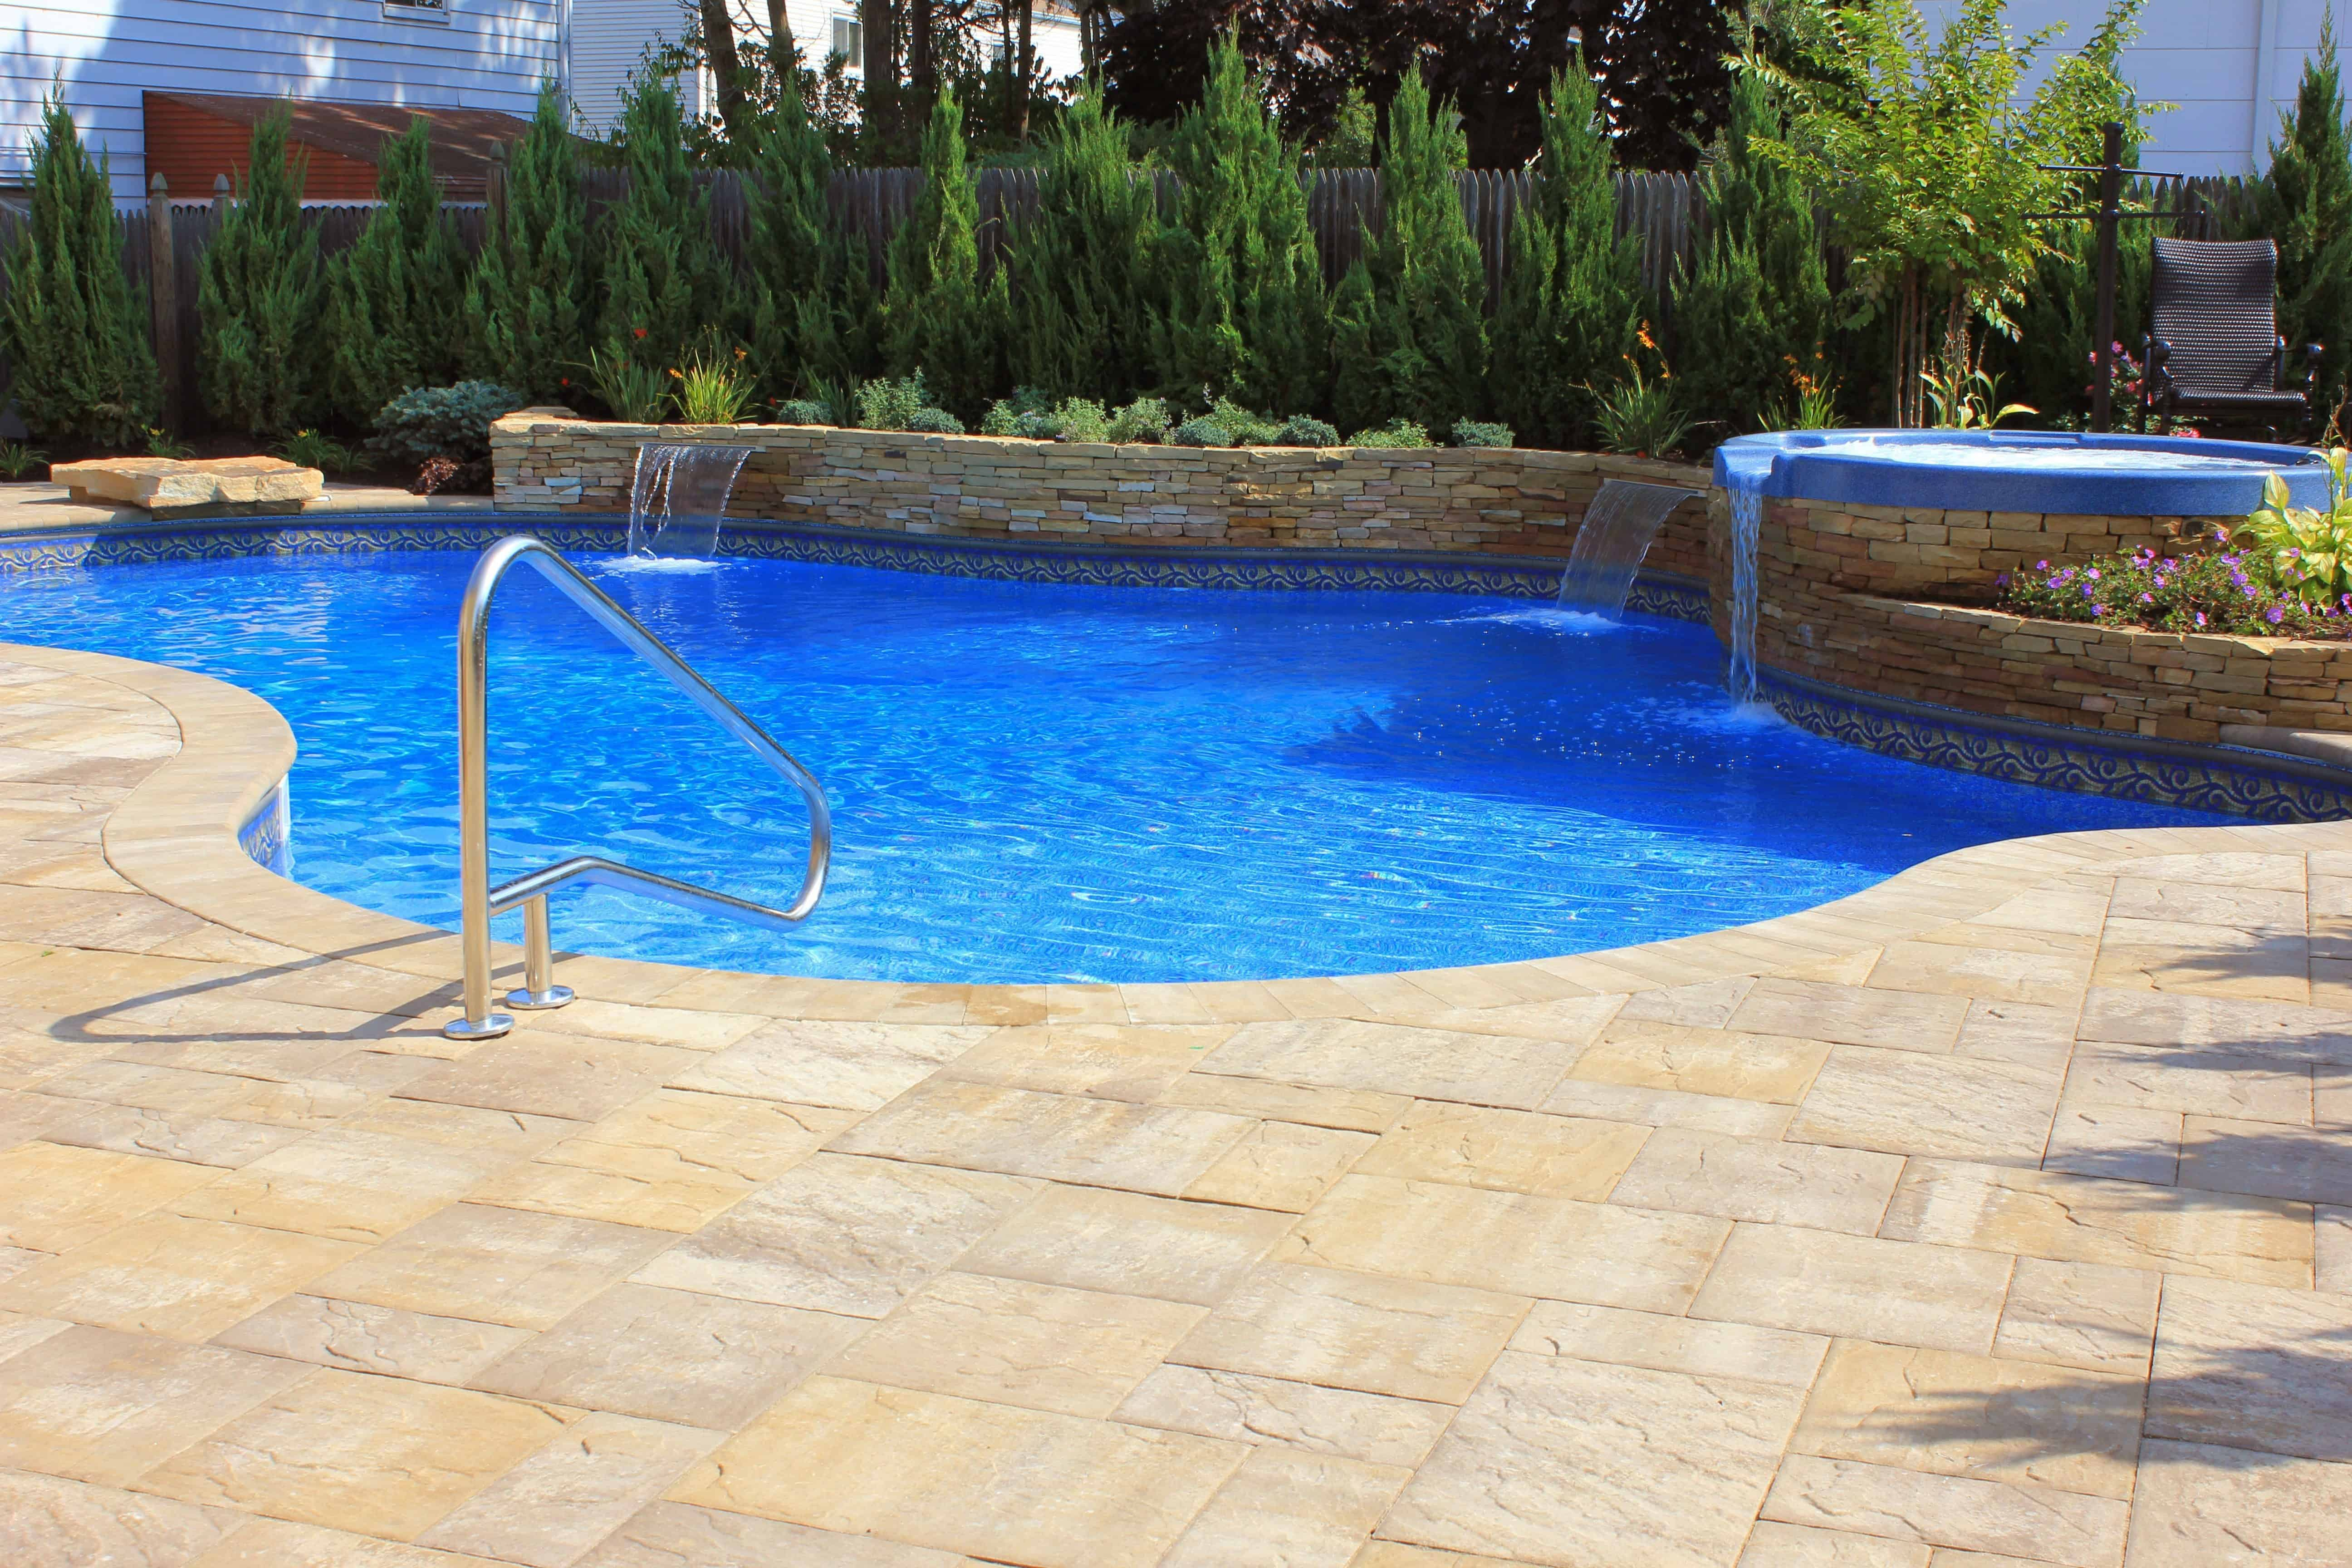 Free Form Pool with Spill over Spa and Sheer Descent Water Features - Merrick, Long Island NY